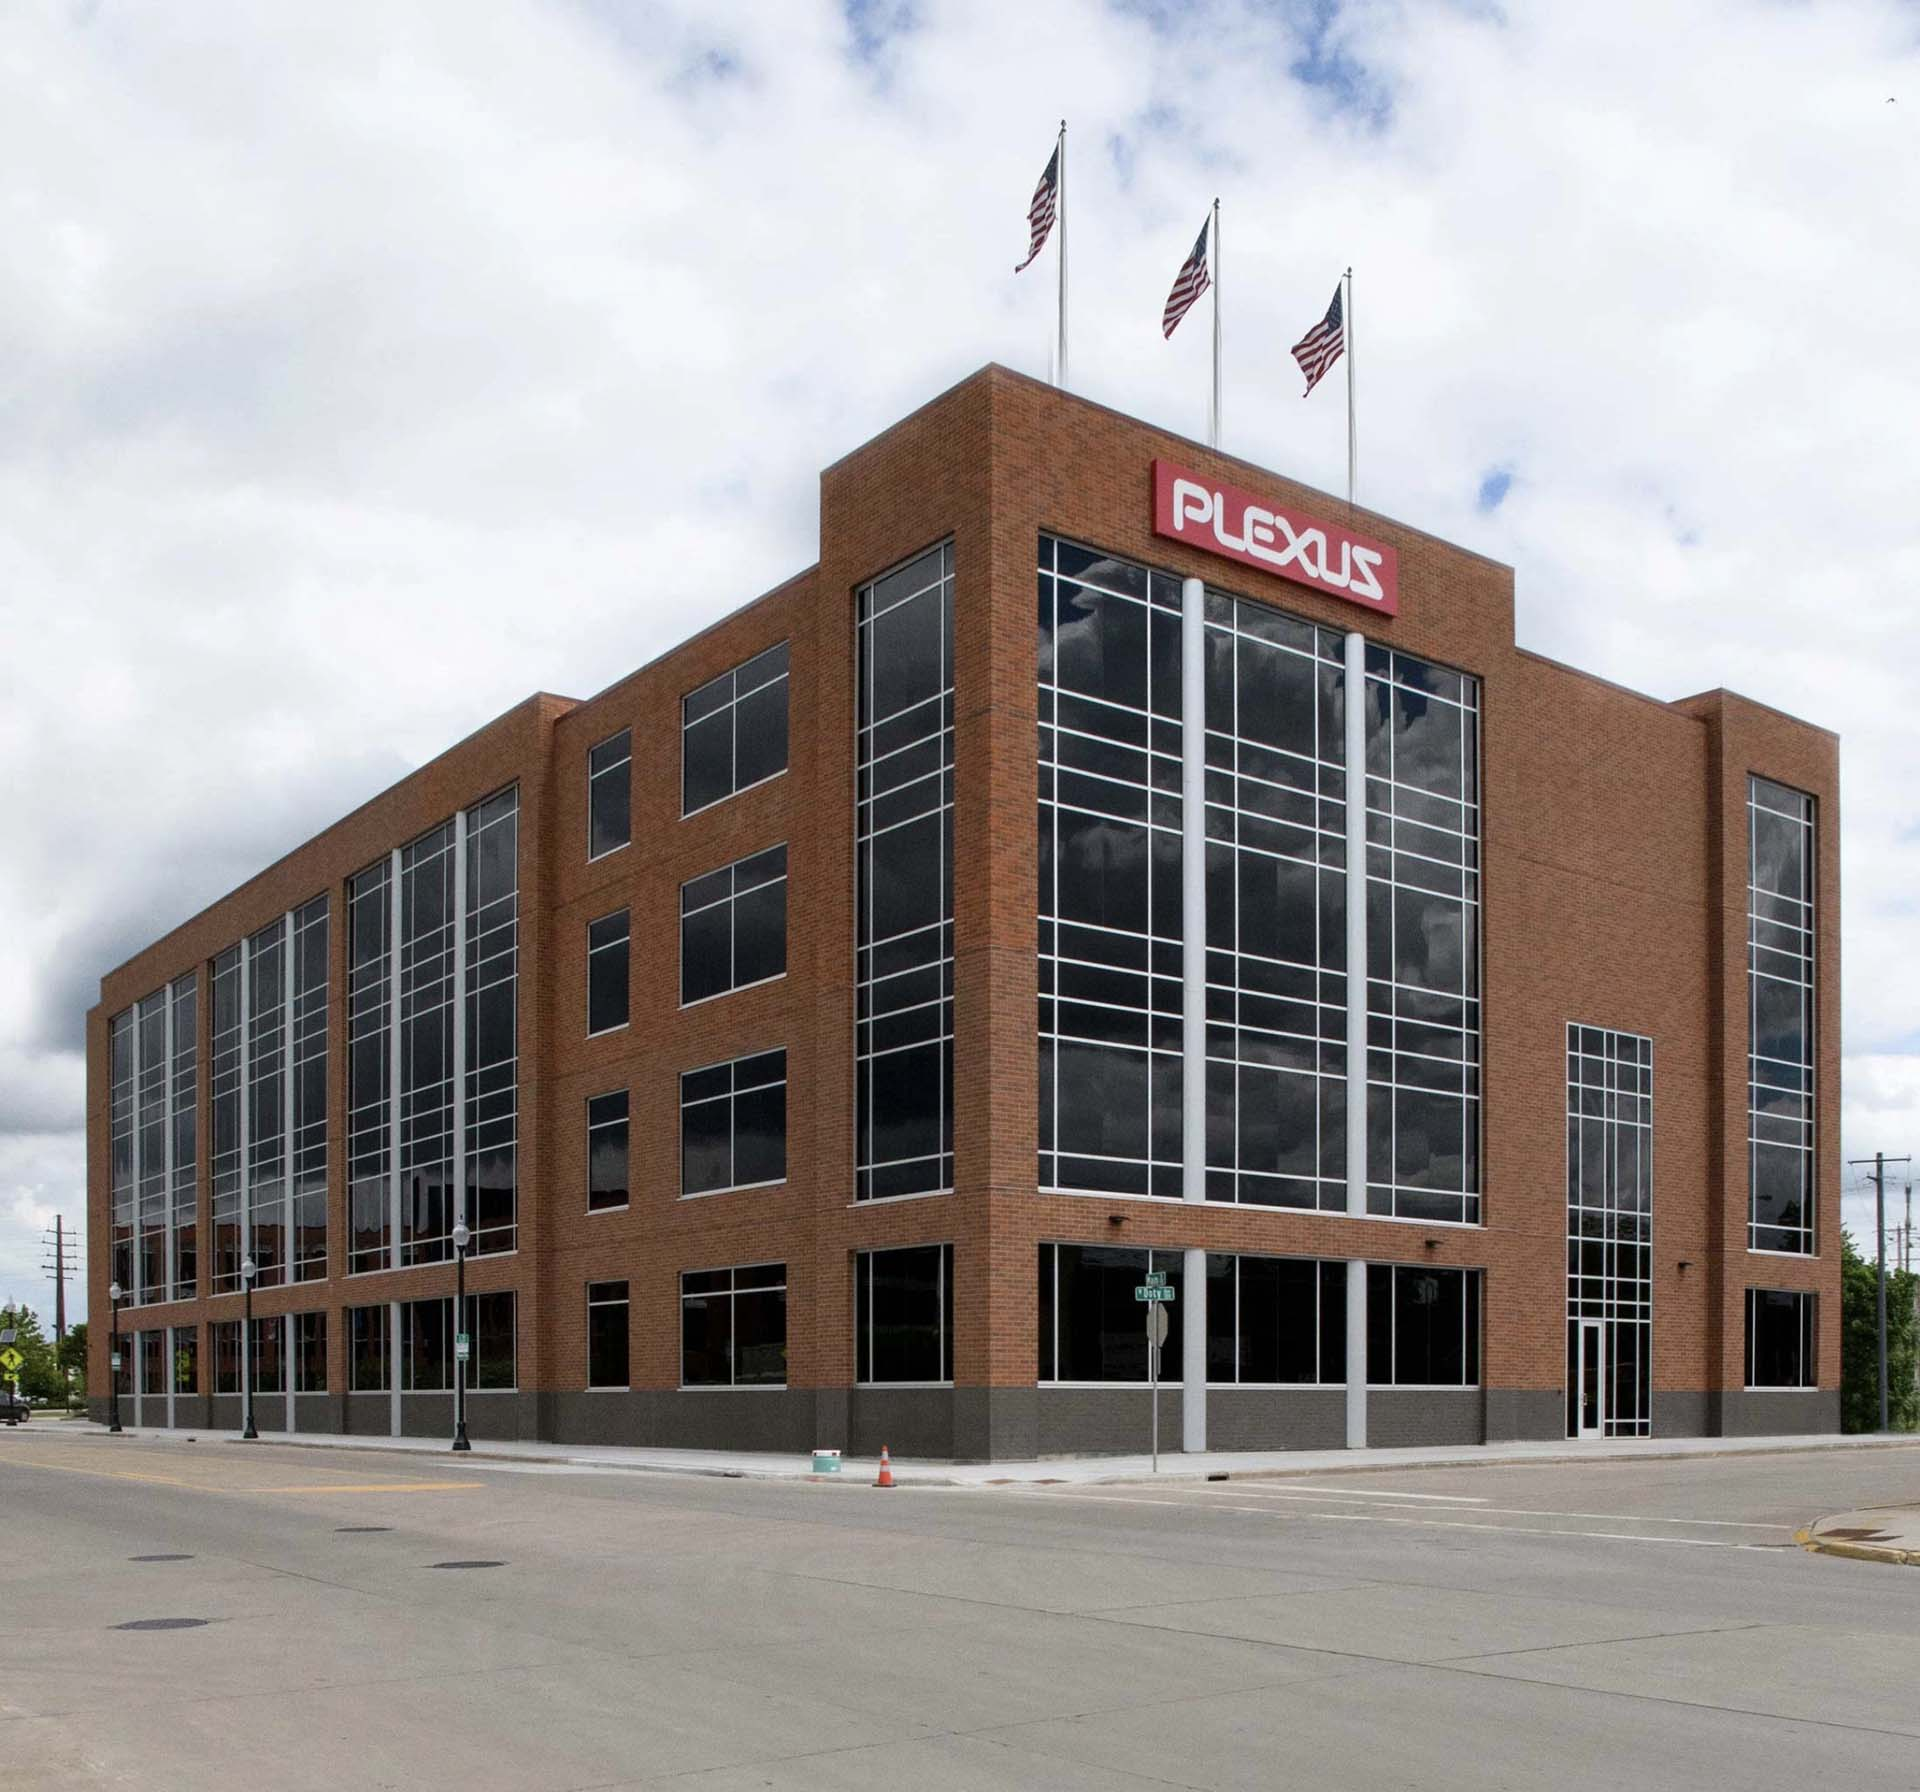 Gateway Office Building (Plexus) - Neenah, WI